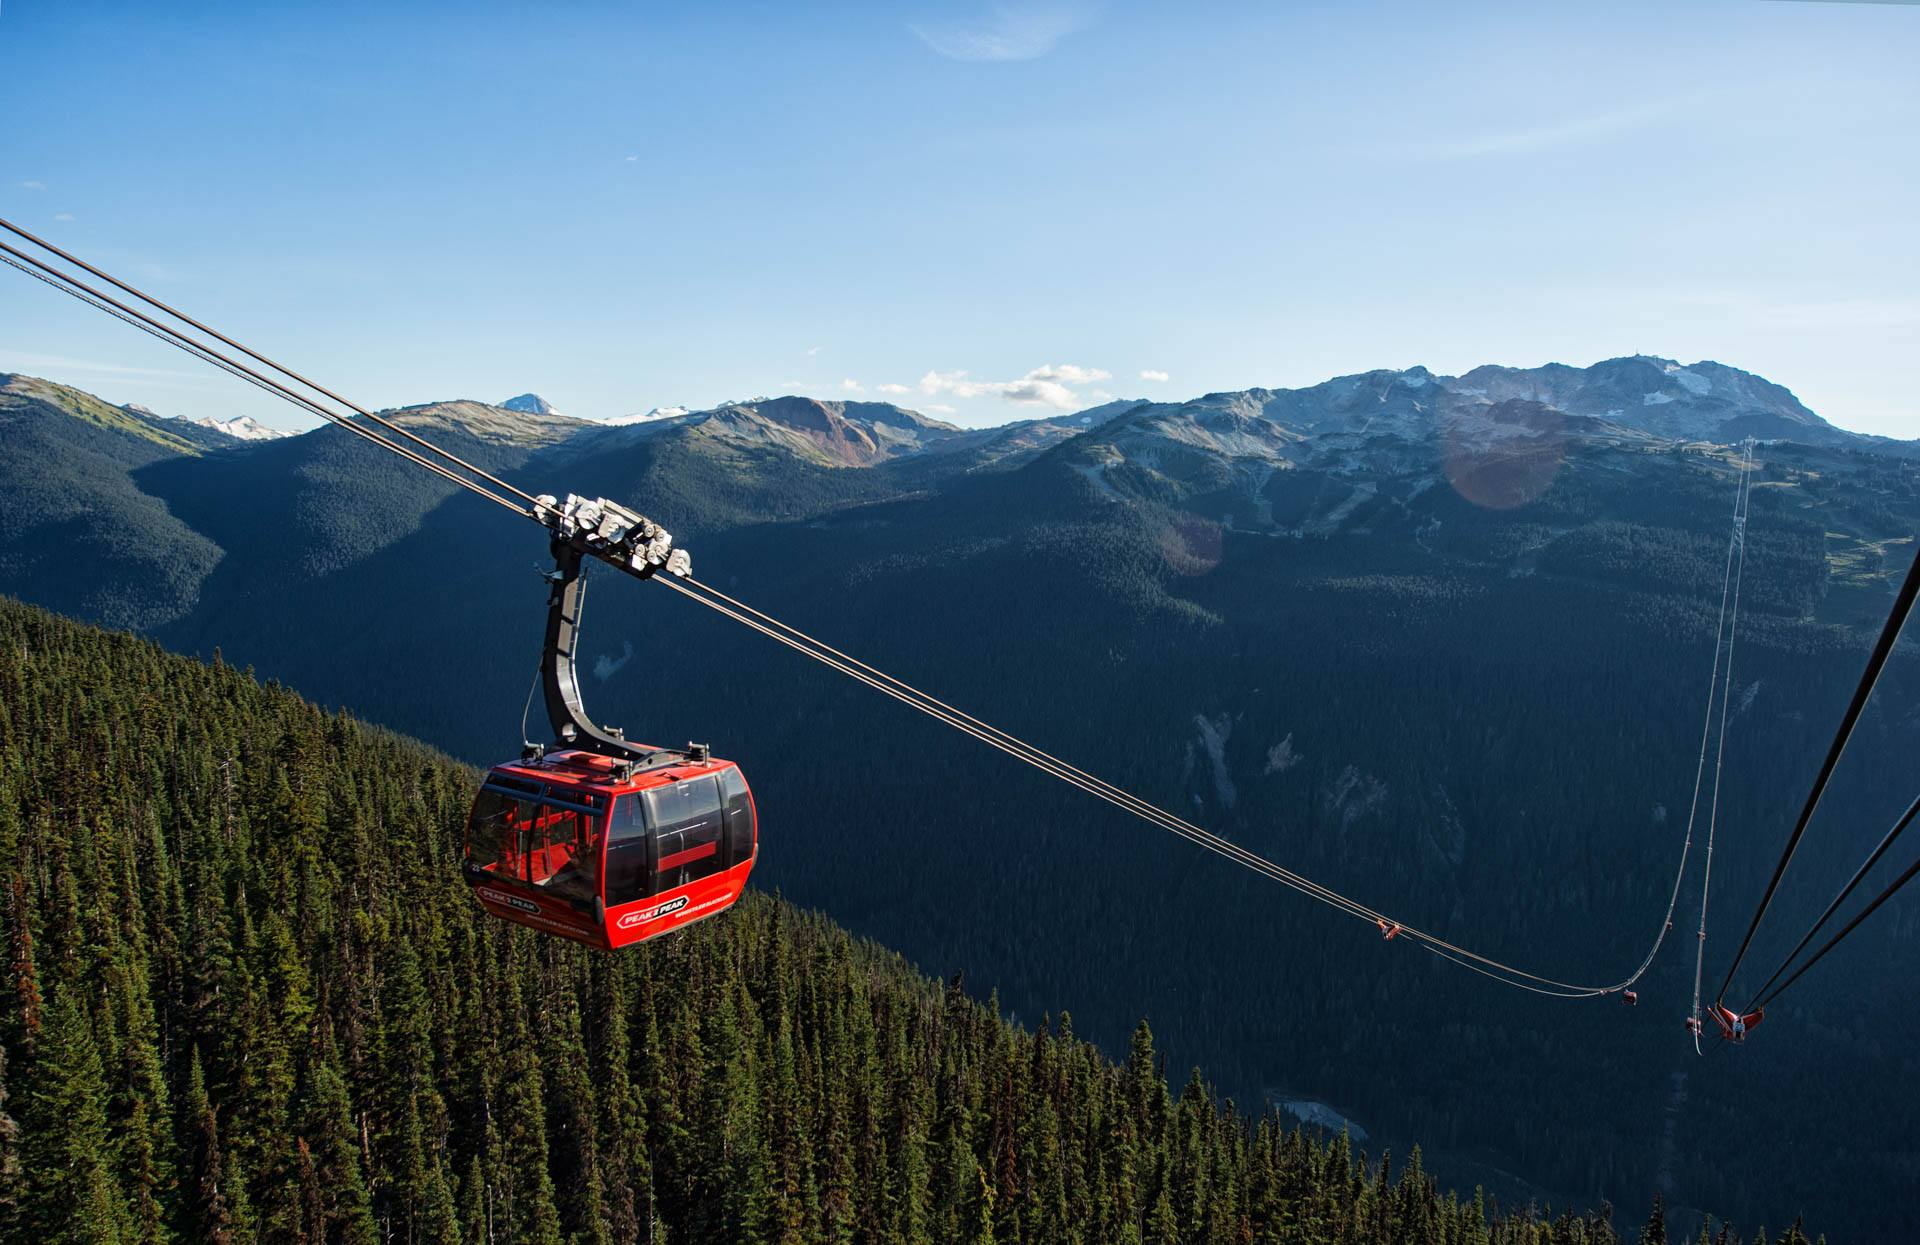 The Peak 2 Peak Gondola between Whistler and Blackcomb mountains (Whistler Blackcomb)